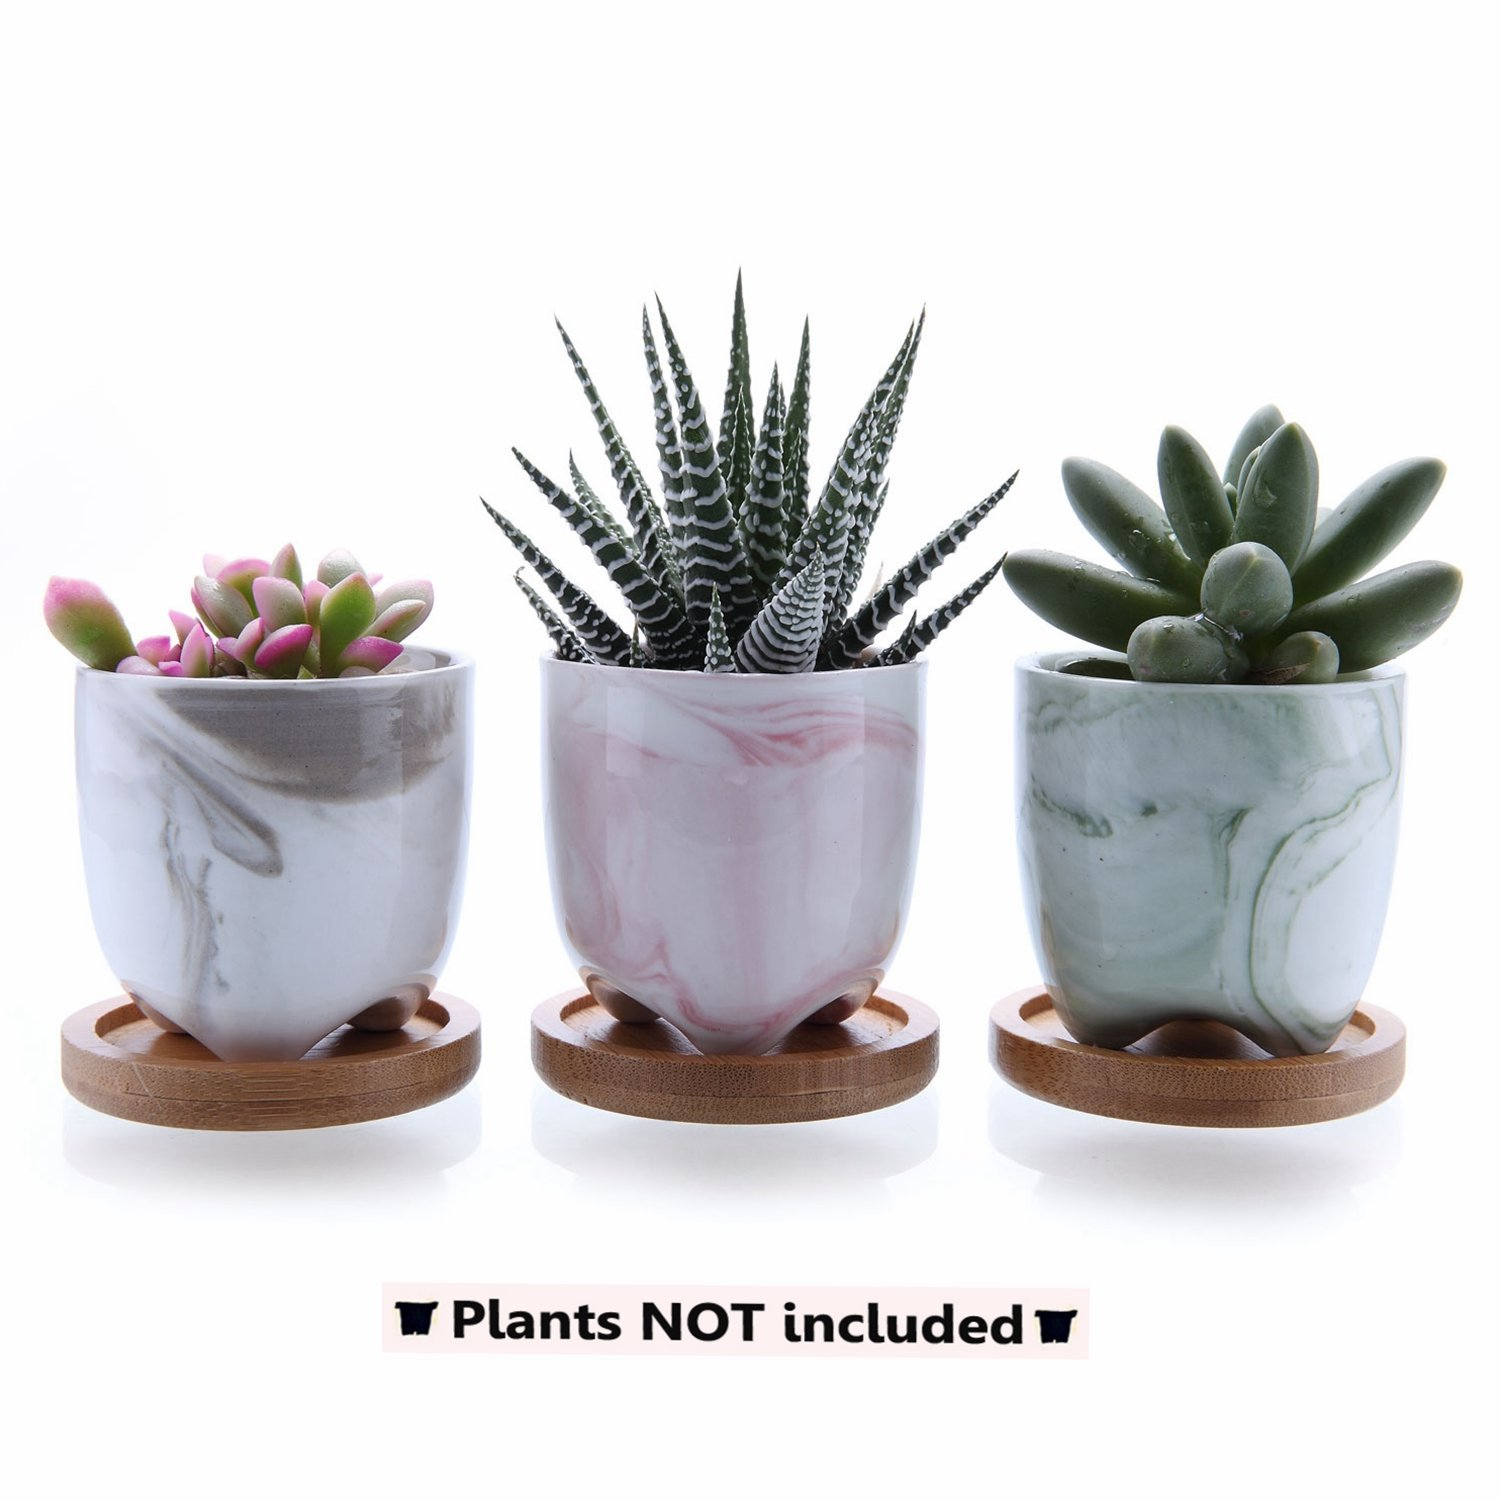 T4U 2.25'' Ice Cream Serial Modern Sucuulent Cactus Plant Pots Flower Pots Planters Containers Window Boxes Full Colors with Bamboo Trays by T4U